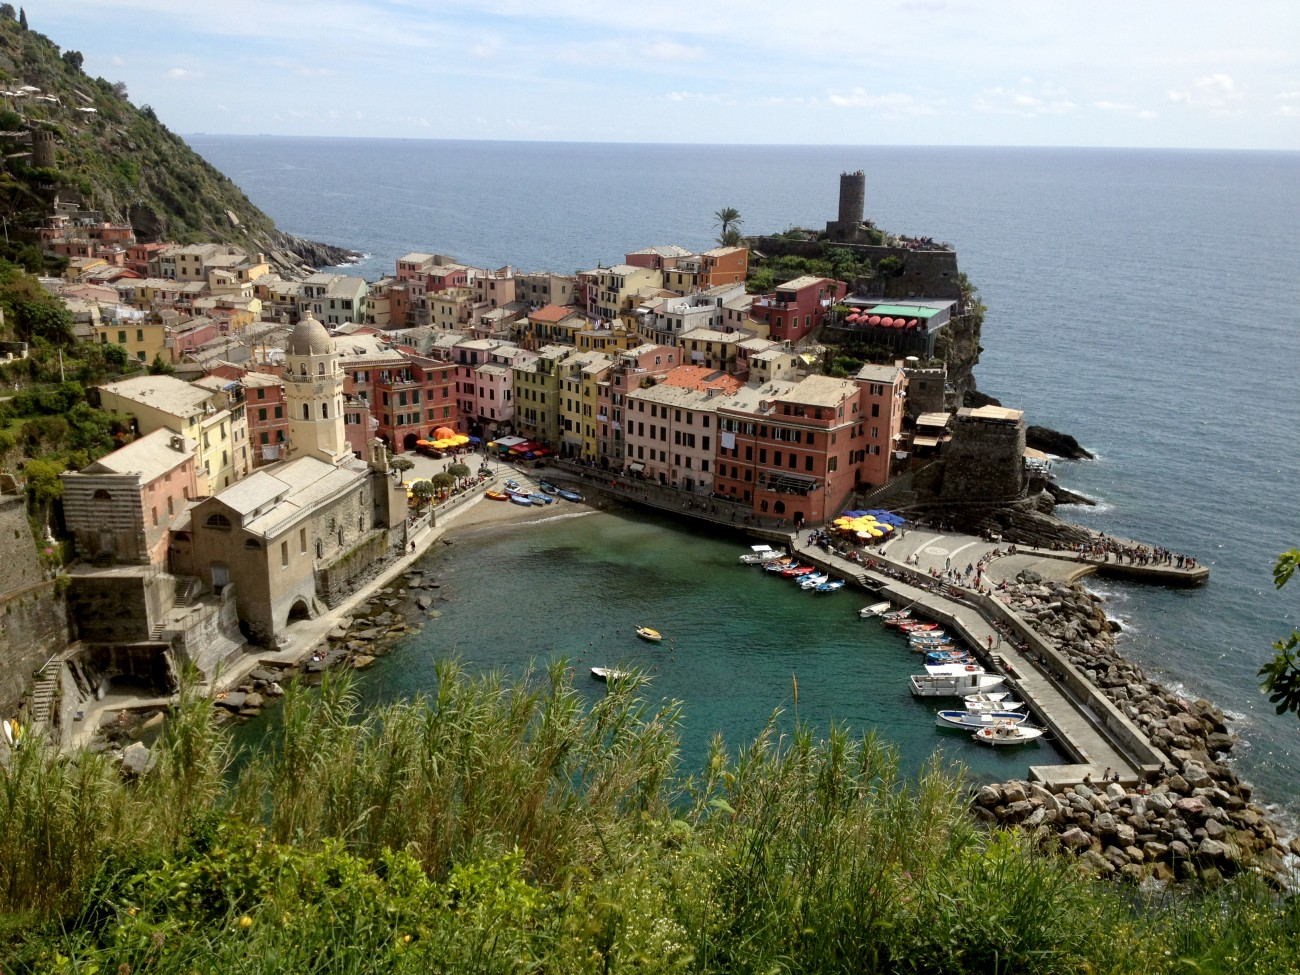 Leaving Vernazza